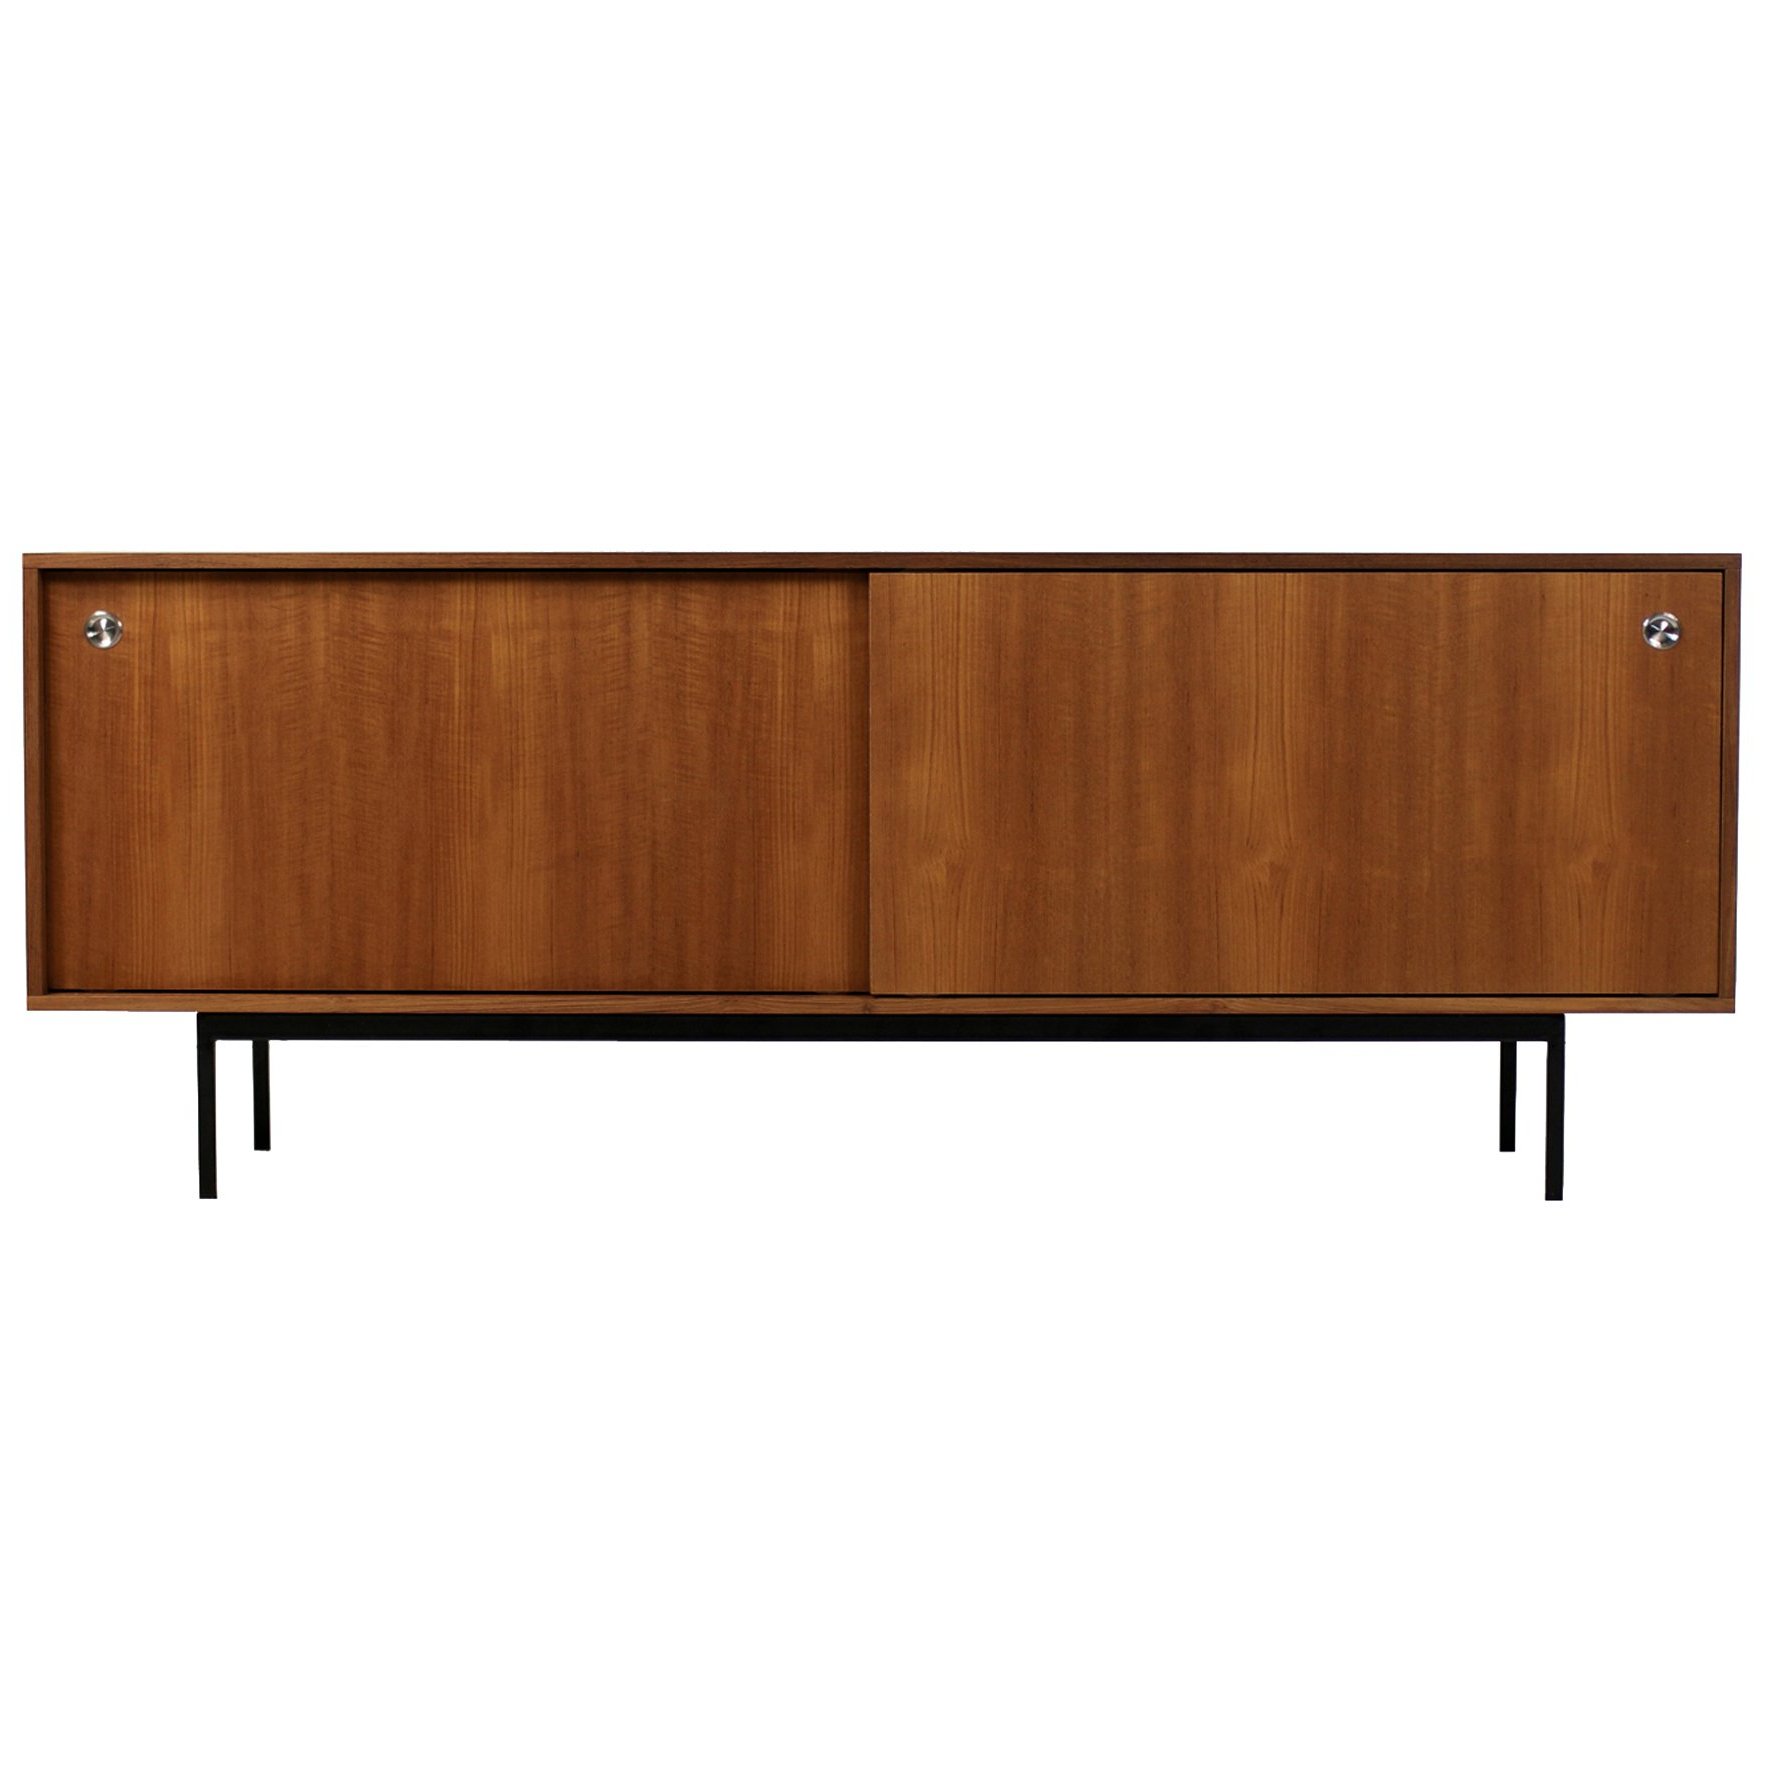 Popular Minimalist Teak Sideboardnathan Lindberg Design, Sliding Doors With Girard 4 Door Sideboards (Gallery 13 of 20)